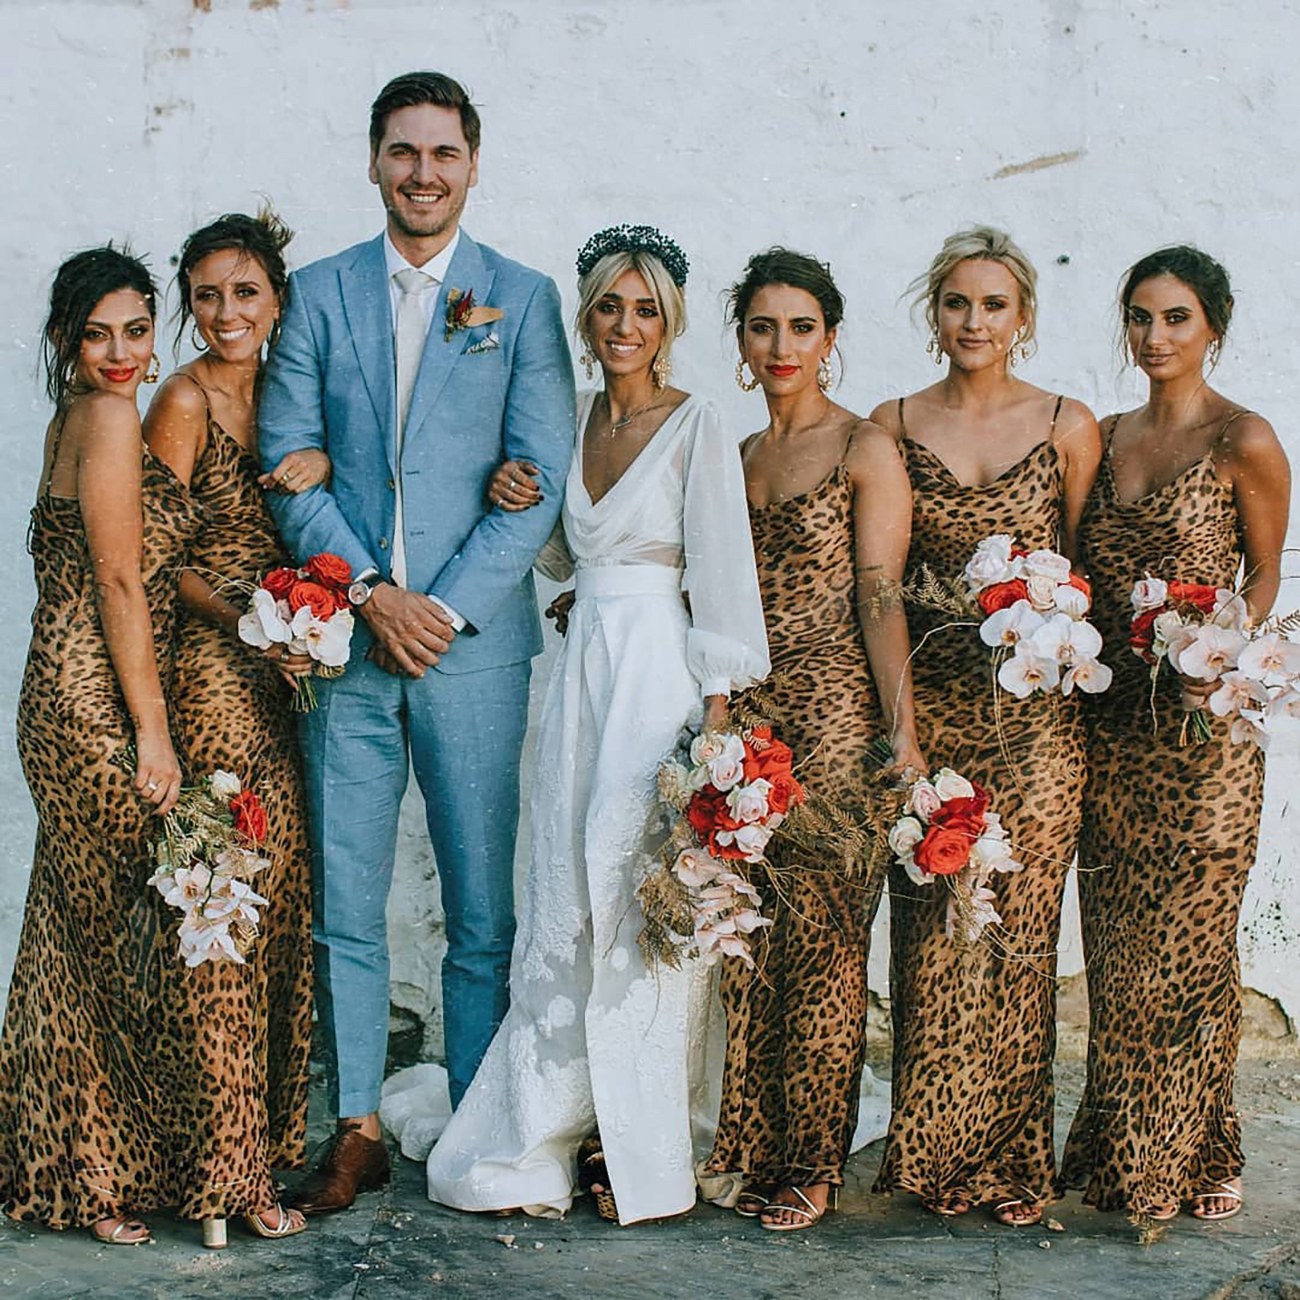 Leopard print wedding